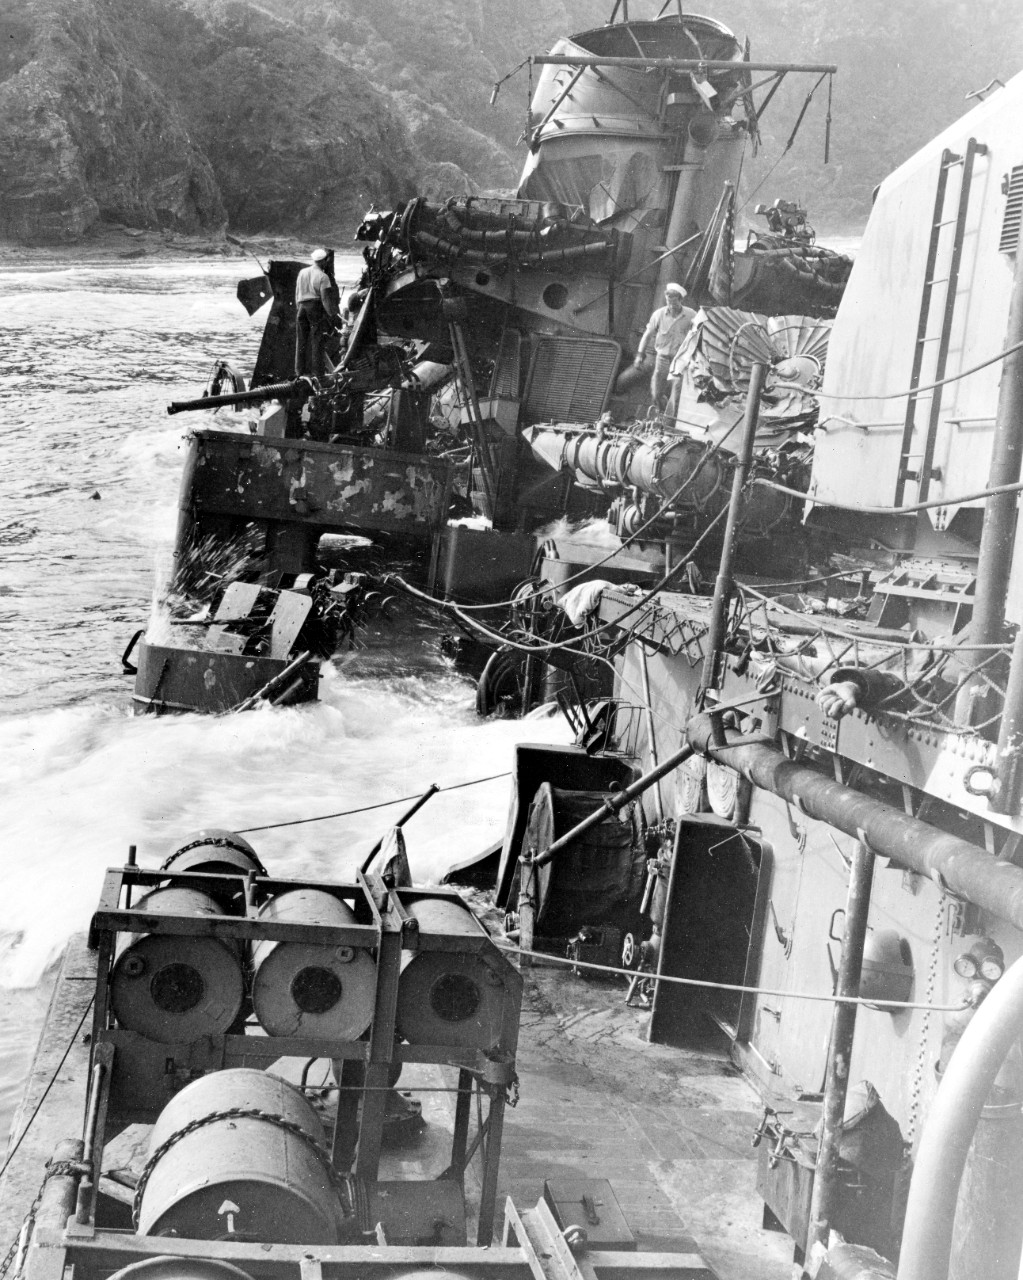 Taken by a member of the inspection party that visited Halligan's wreck on 28 March 1945, this photo shows the ship down by the bow, the surf breaking over the main deck on the port side, while very little forward of the No. 2 stack (her steaming colors hang limply from the gaff) resembled what had once been a trim destroyer. Note the conical shield for the No.2 torpedo tube has been smashed flat, and that evidently human remains are still on board, as a man's arm lies over the deck edge near Mount 53, clenched fist clearly visible. (U.S. Navy Photograph 80-G-324188, National Archives and Records Administration, Still Pictures Division, College Park, Md.)